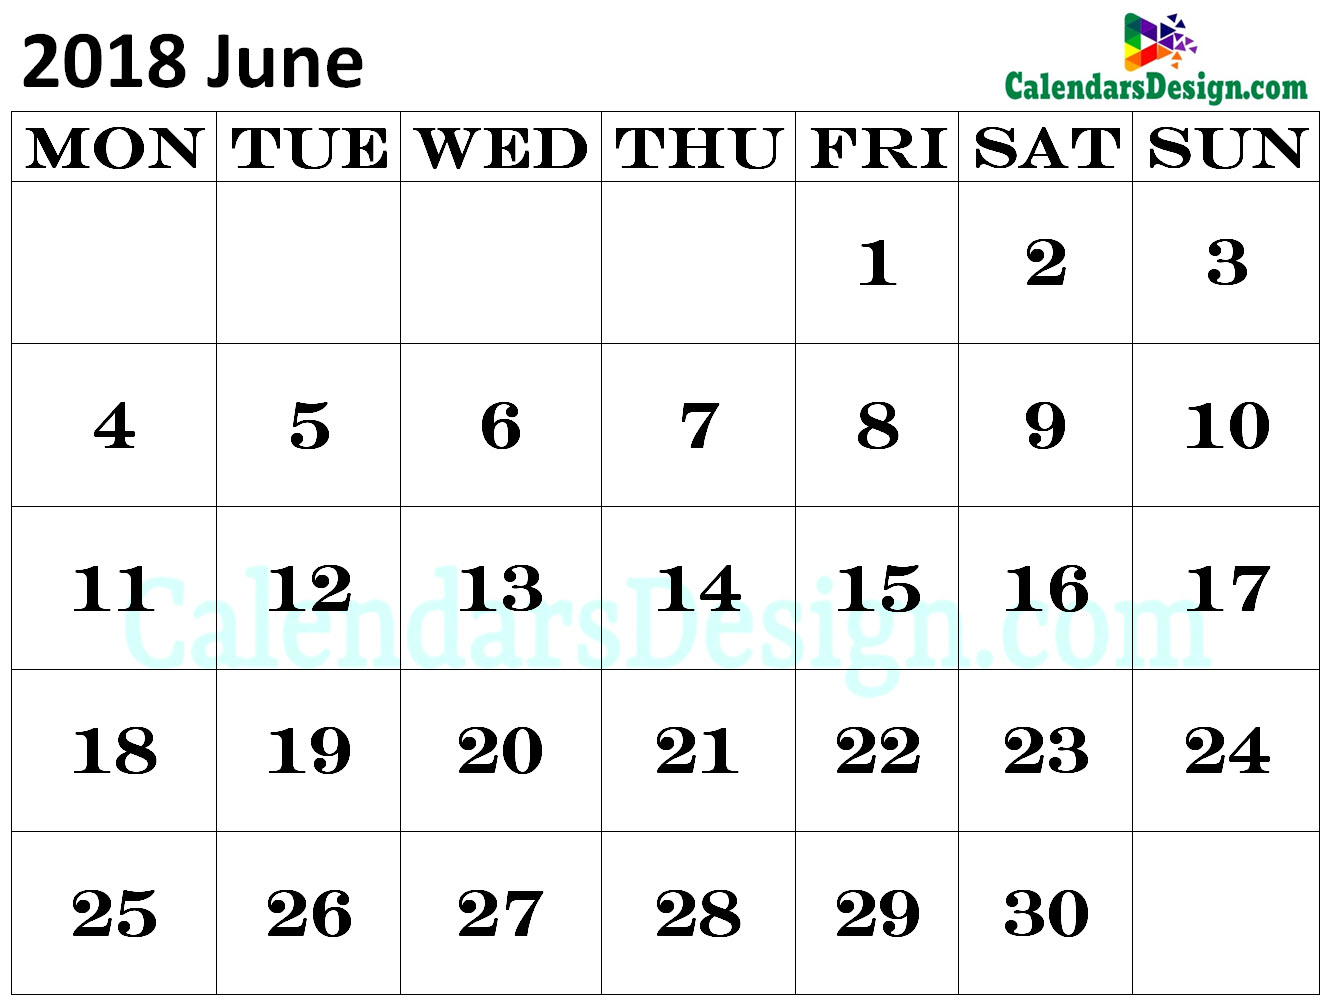 Calendar for June 2018 in Excel